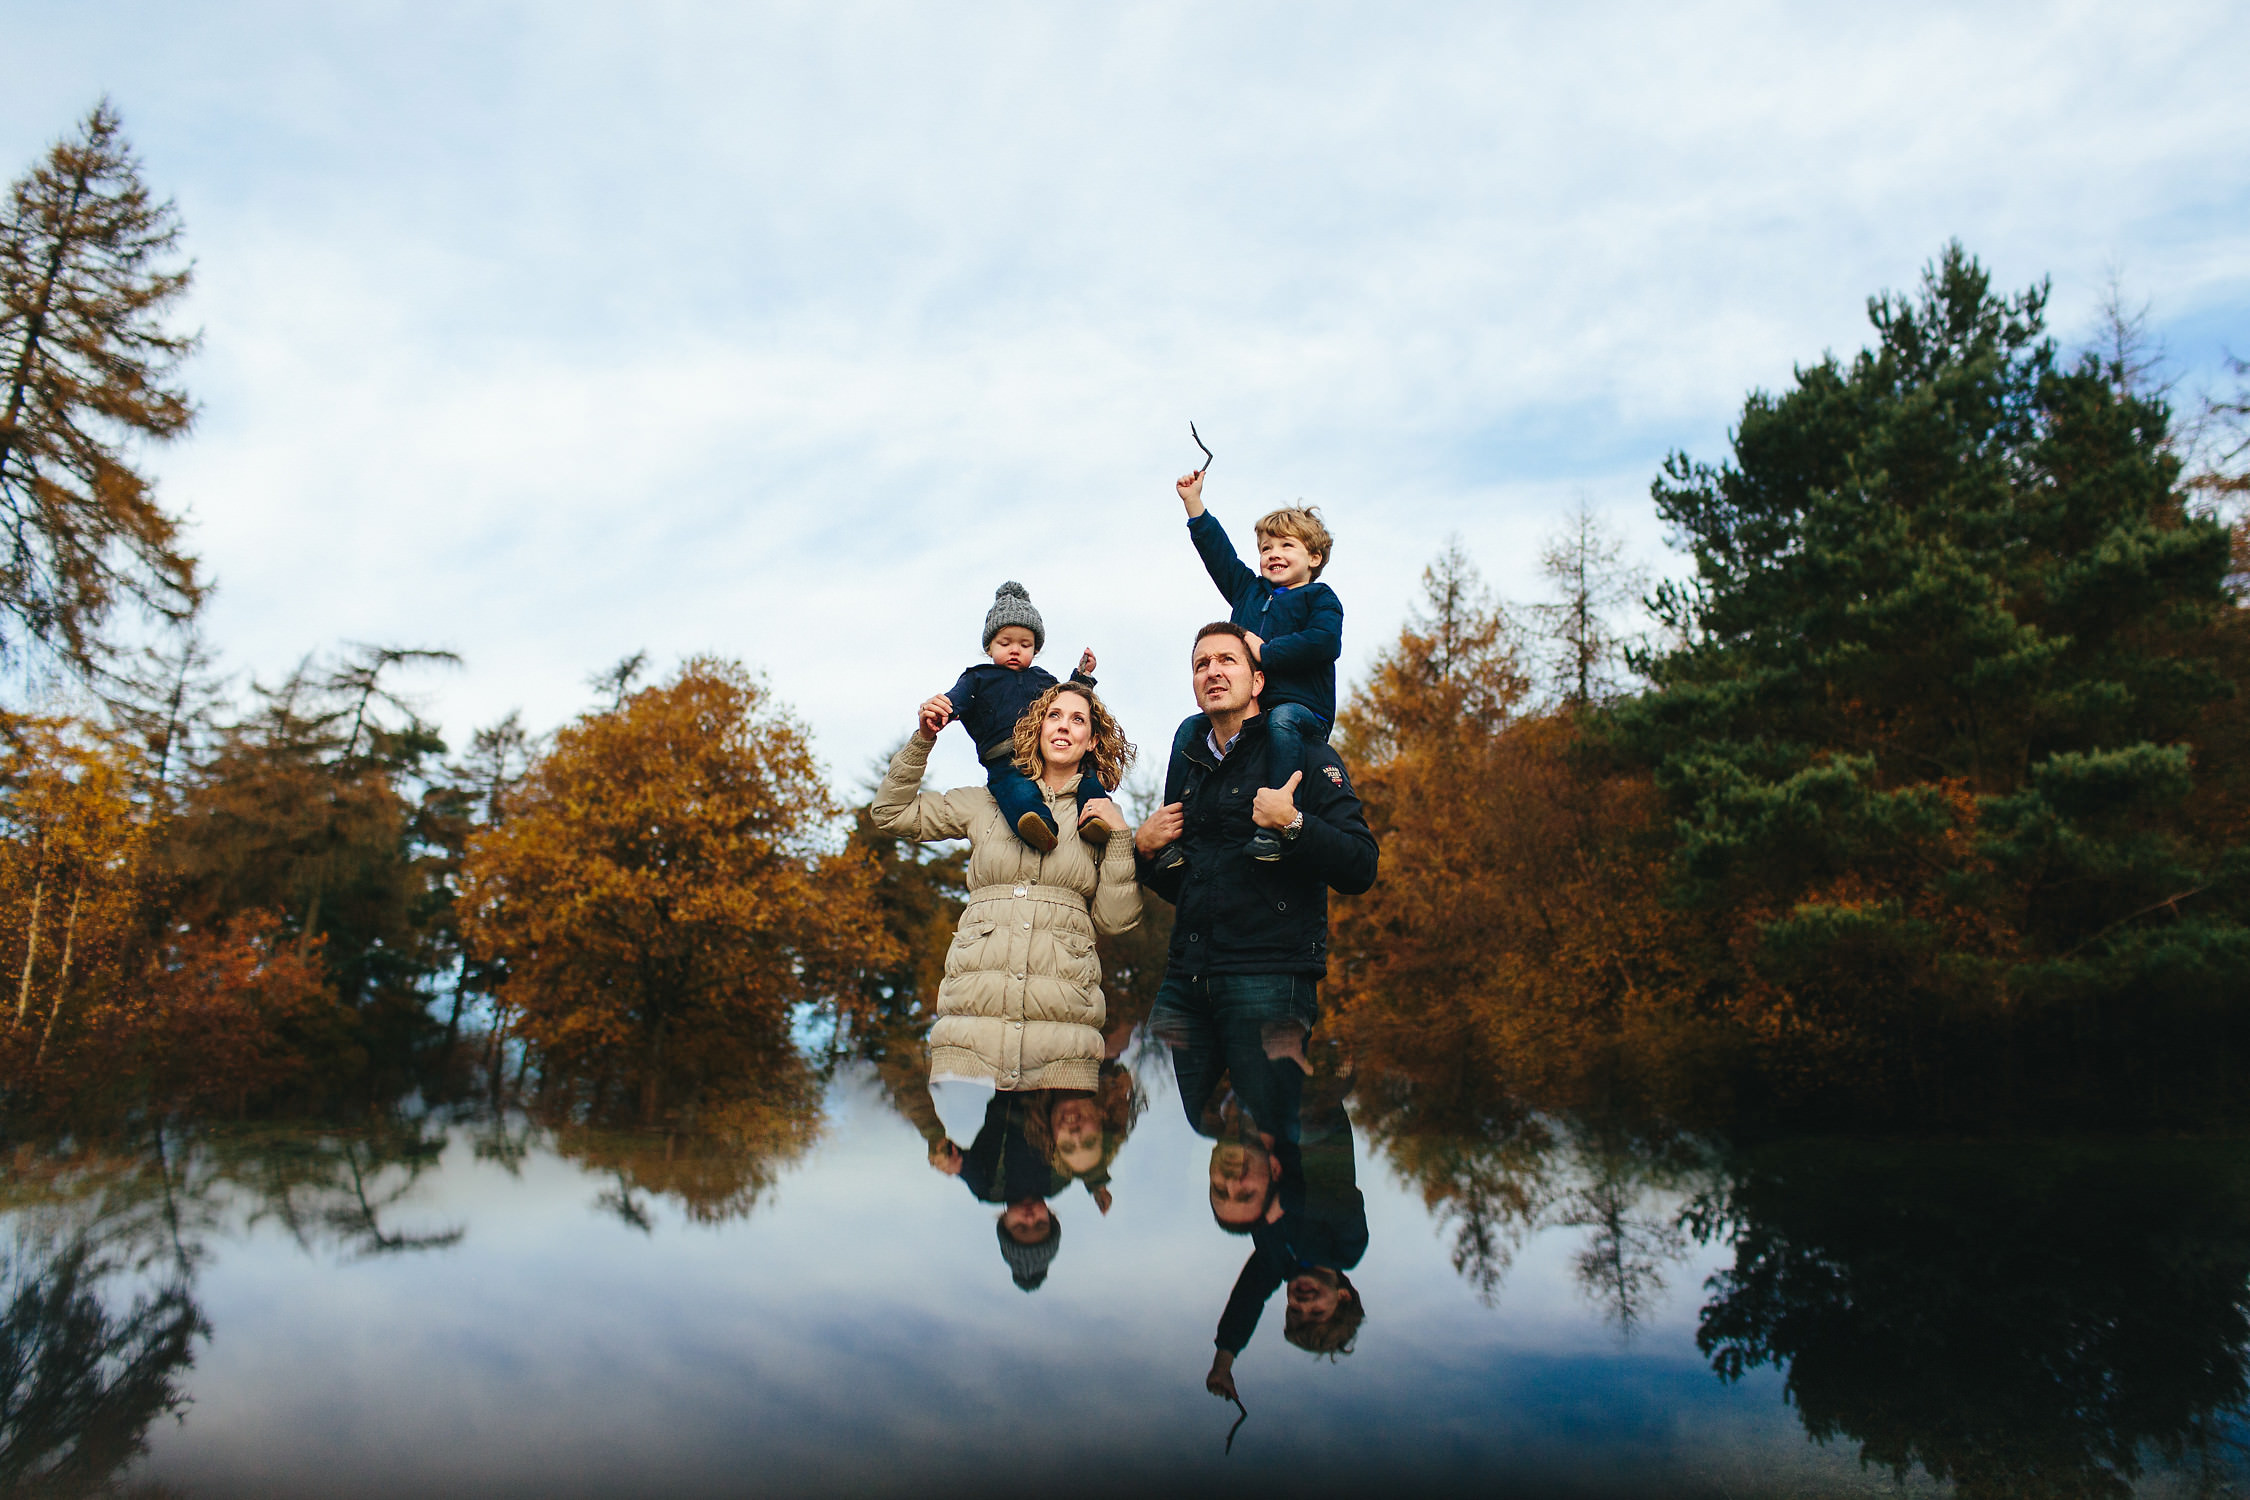 Buckinghamshire Natural Family Portrait Photography